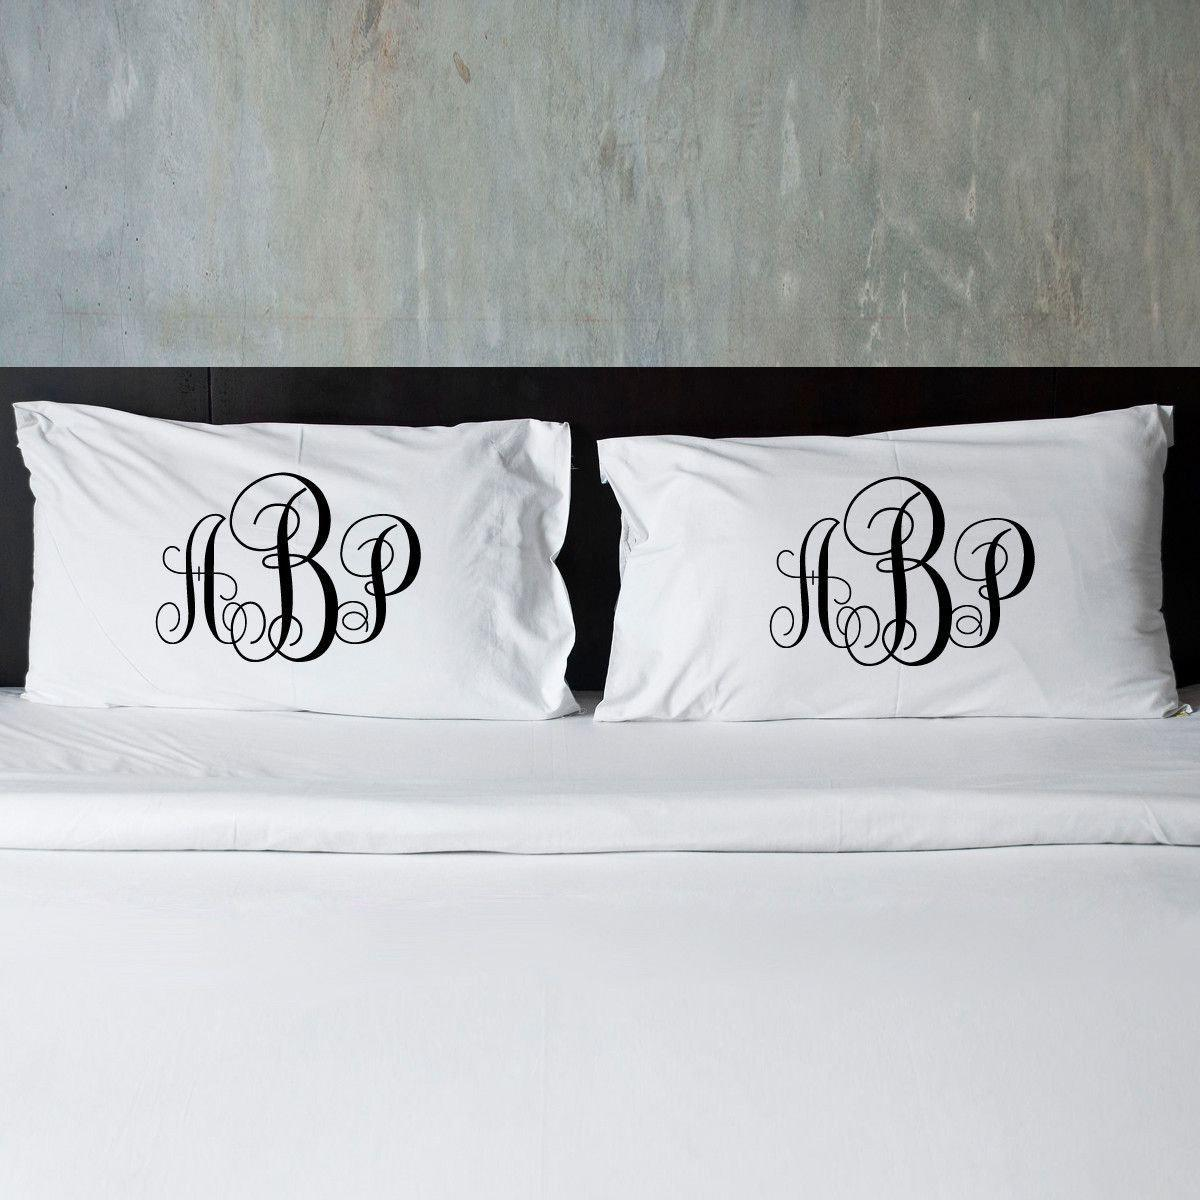 Personalized-Interlocking-Monogram-Pillow-Cases-for-Couples